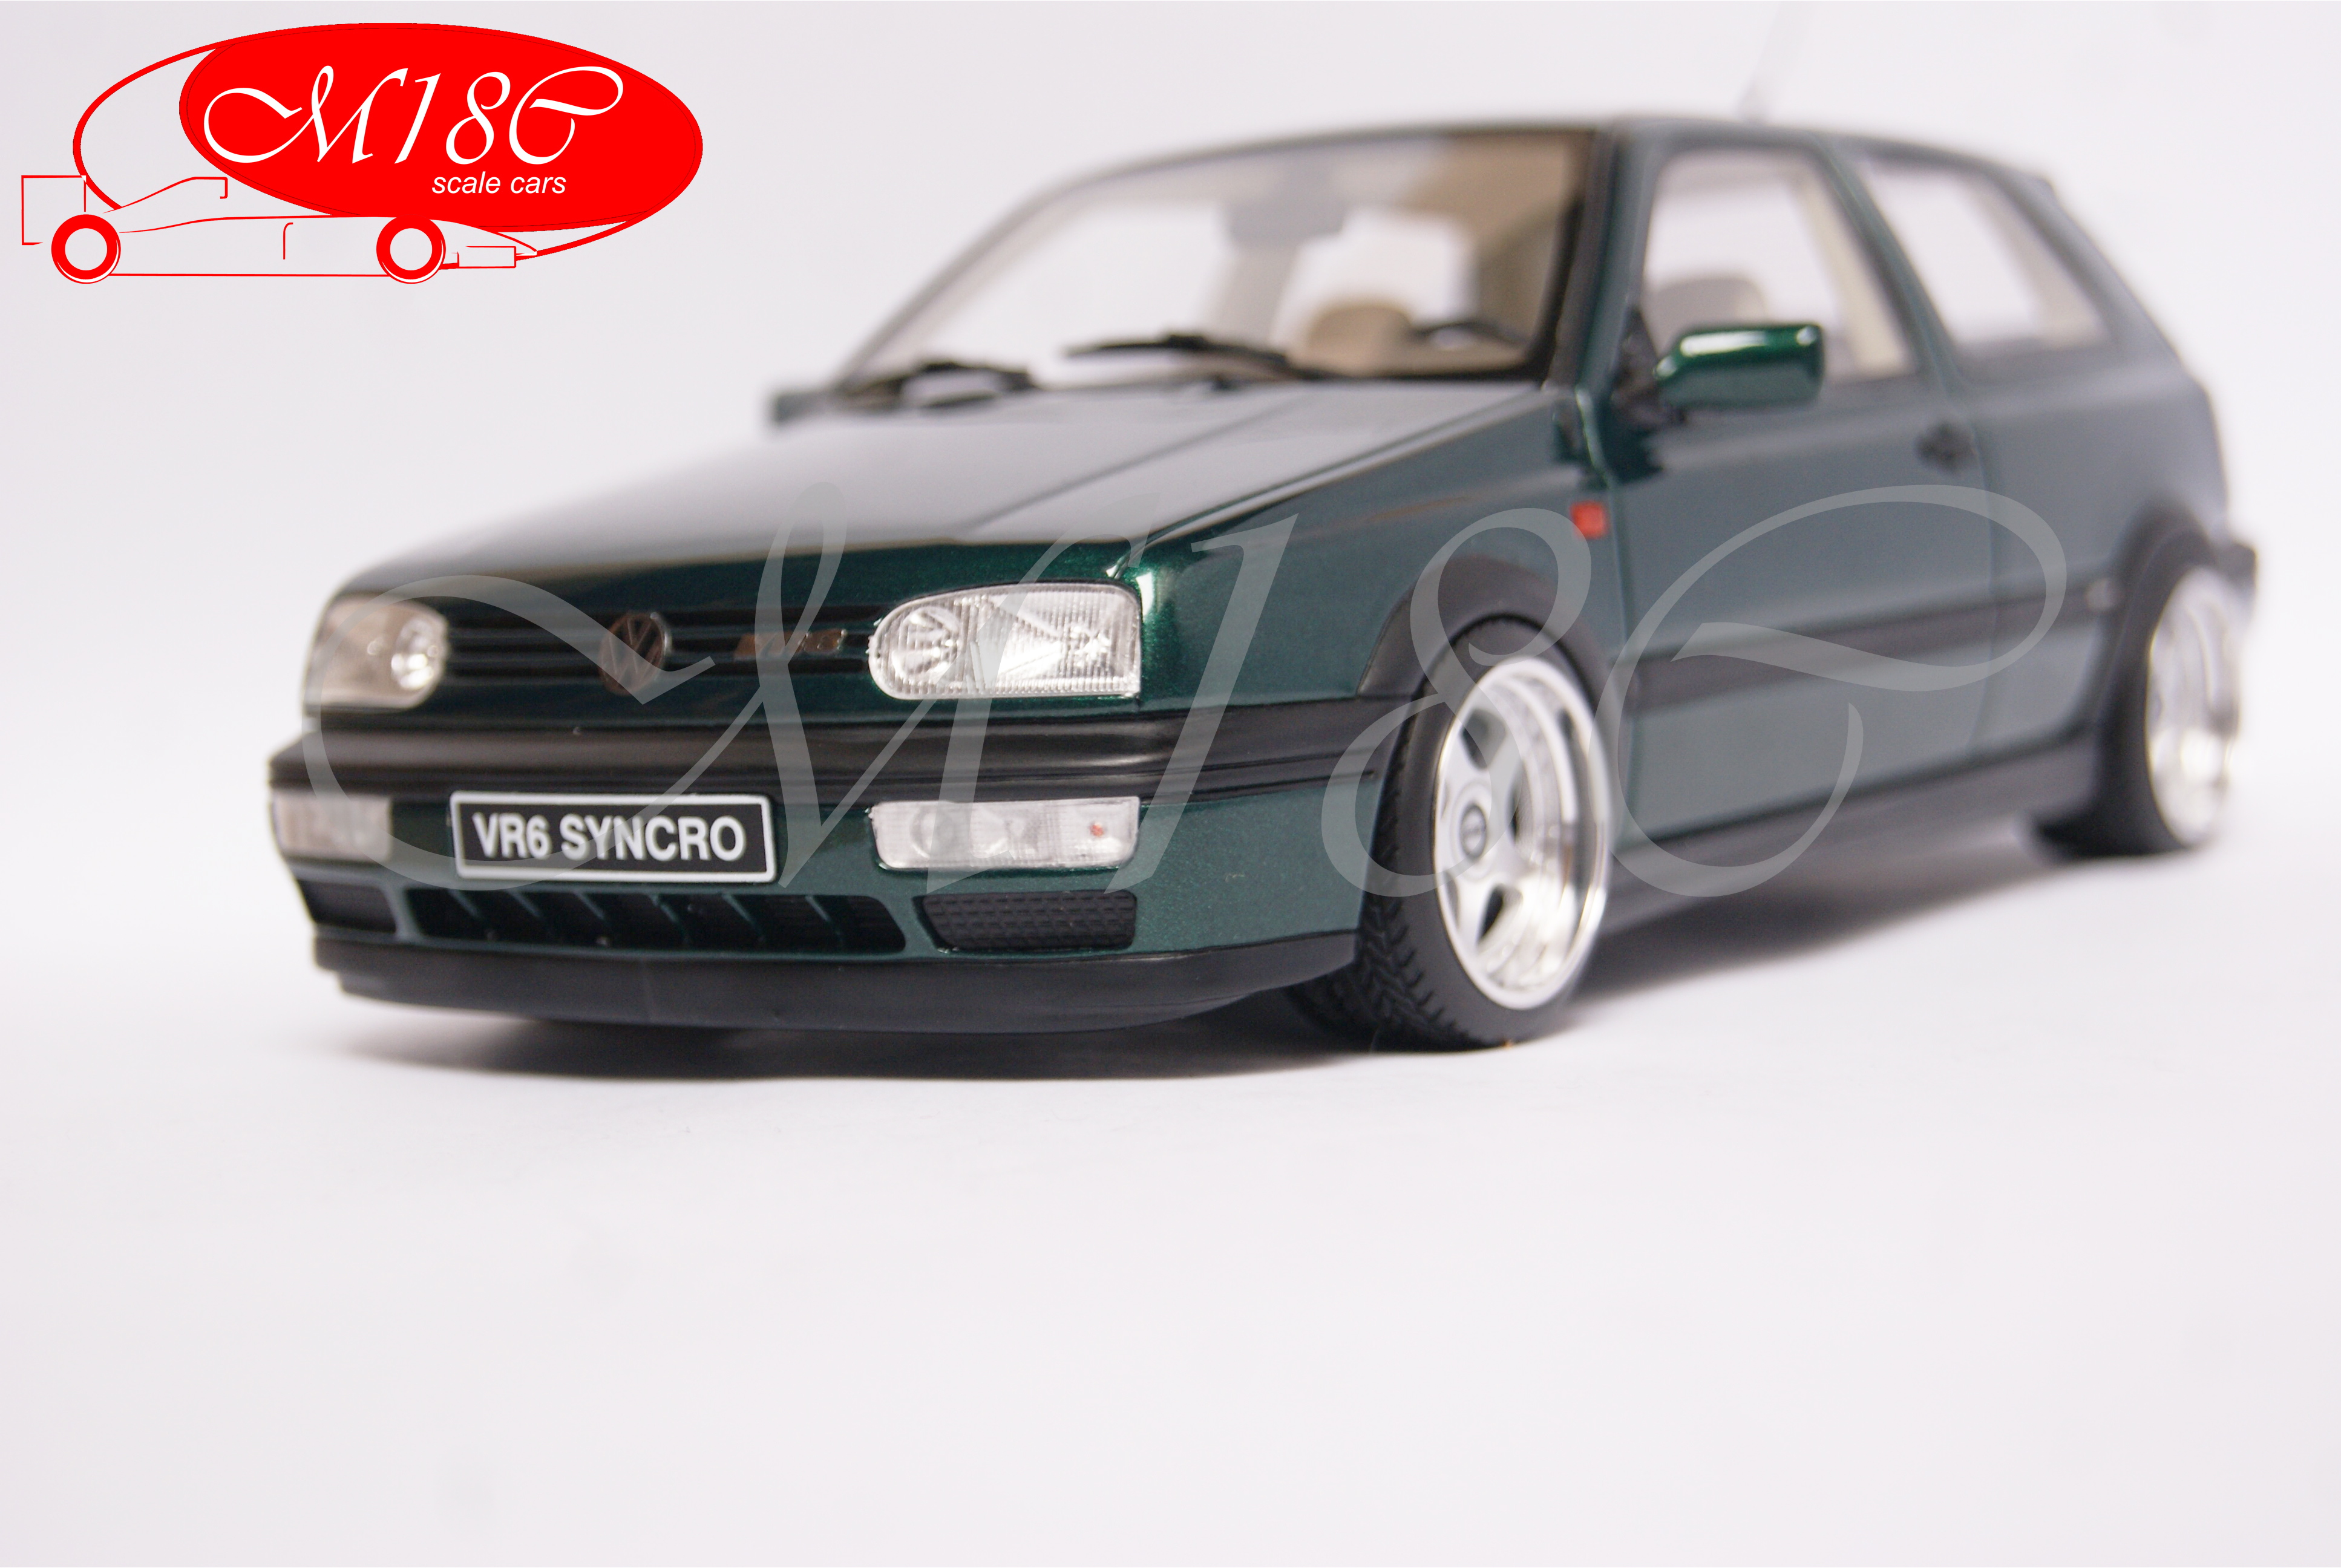 Volkswagen Golf III 1/18 Ottomobile VR6 synchro grun jantes OZ Racing 17 pouces miniature